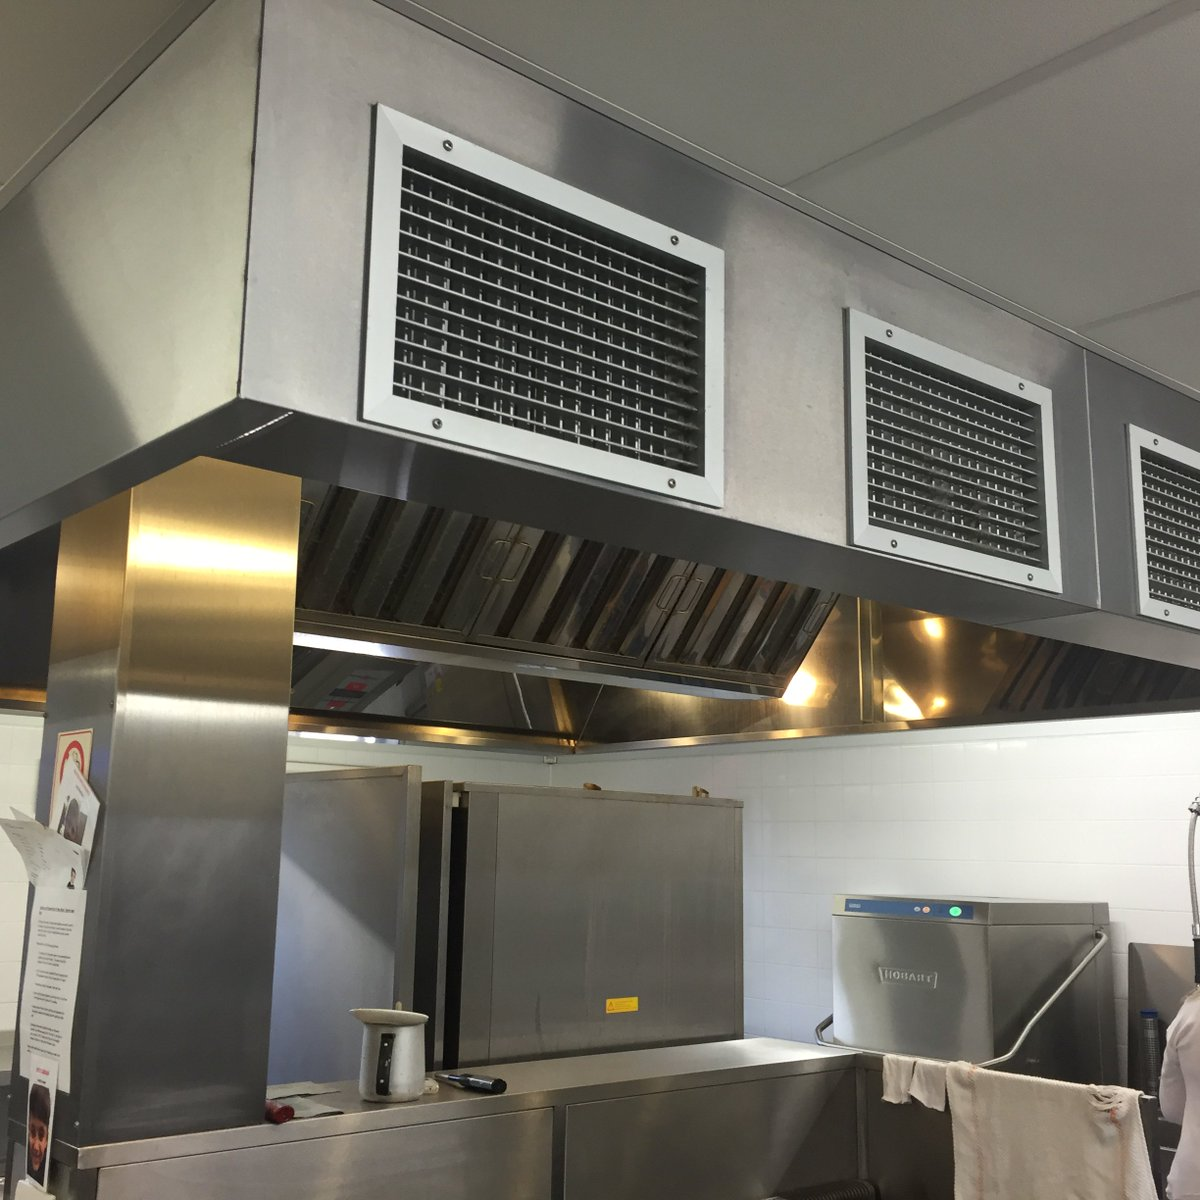 R Briggs Ltd on Twitter  Small commercial kitchen extraction canopy with fresh air input to the front face of the canopy manufactured and installed by R ... & R Briggs Ltd on Twitter: